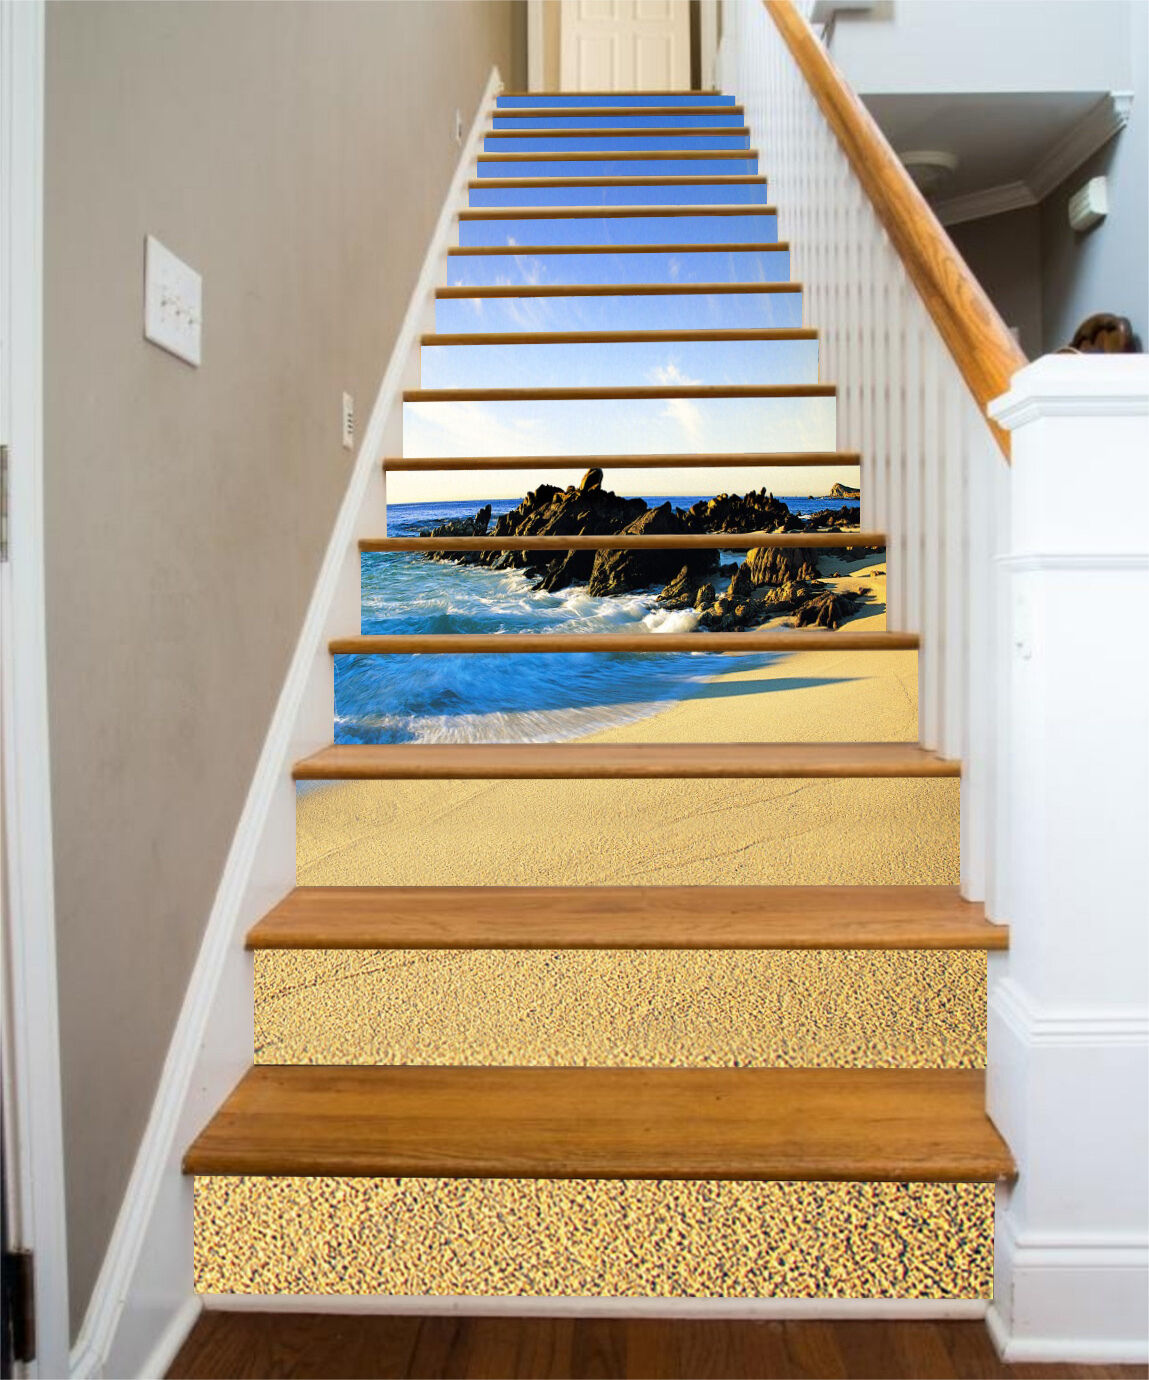 3D plage sky 357 Stair Risers Decoration Photo Mural Vinyl Decal Wallpaper UK